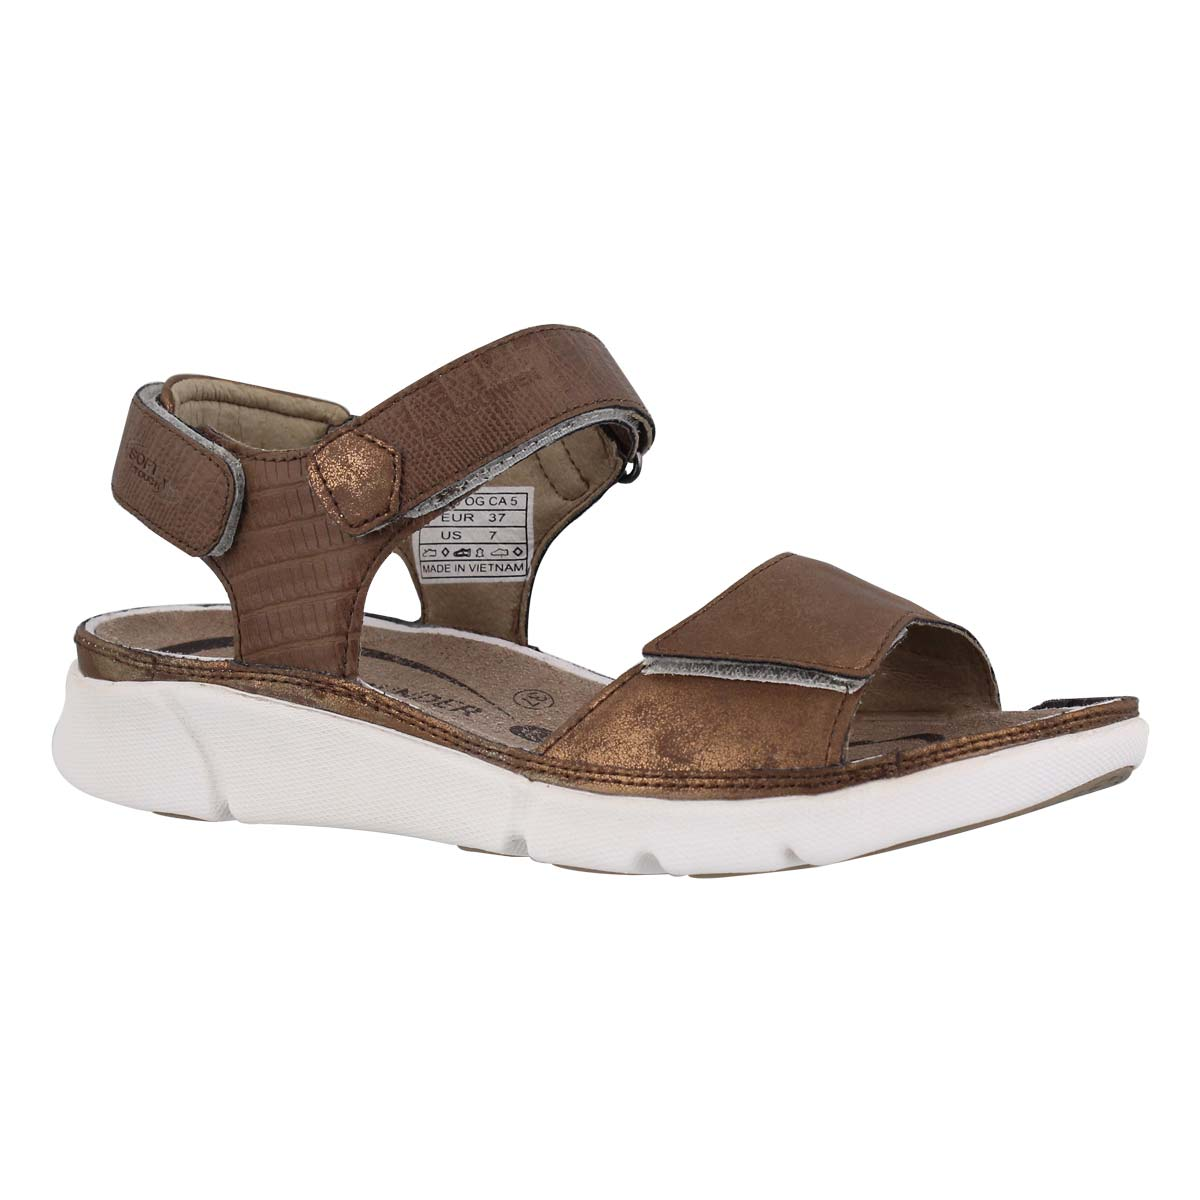 Women's TABASA bronze casual sandals